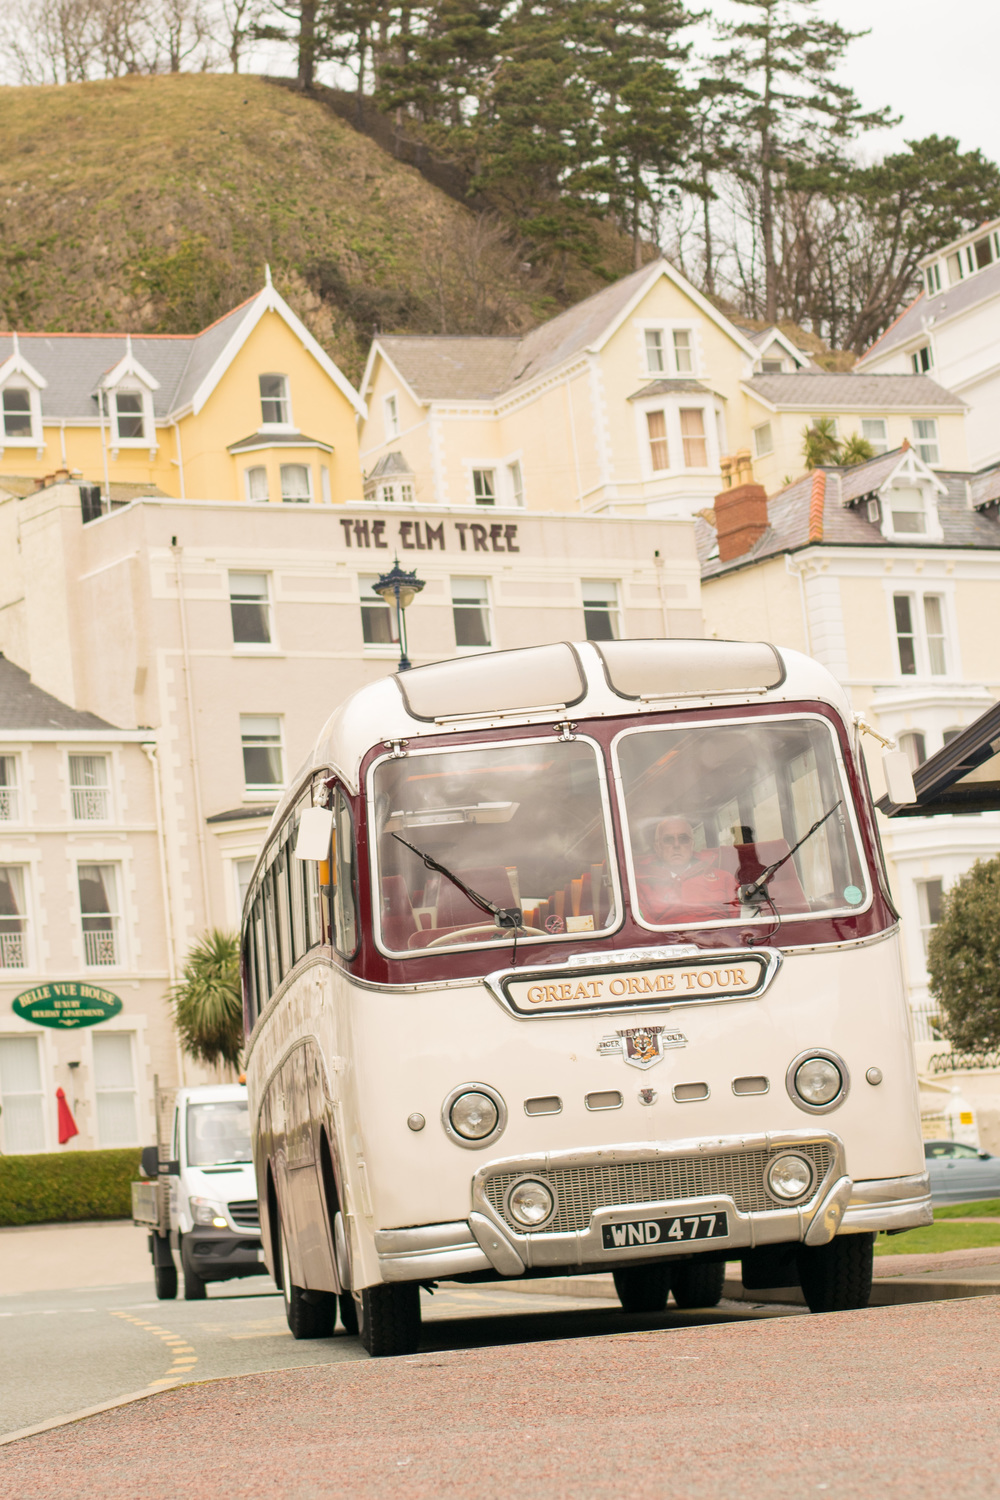 tour bus in llandudno